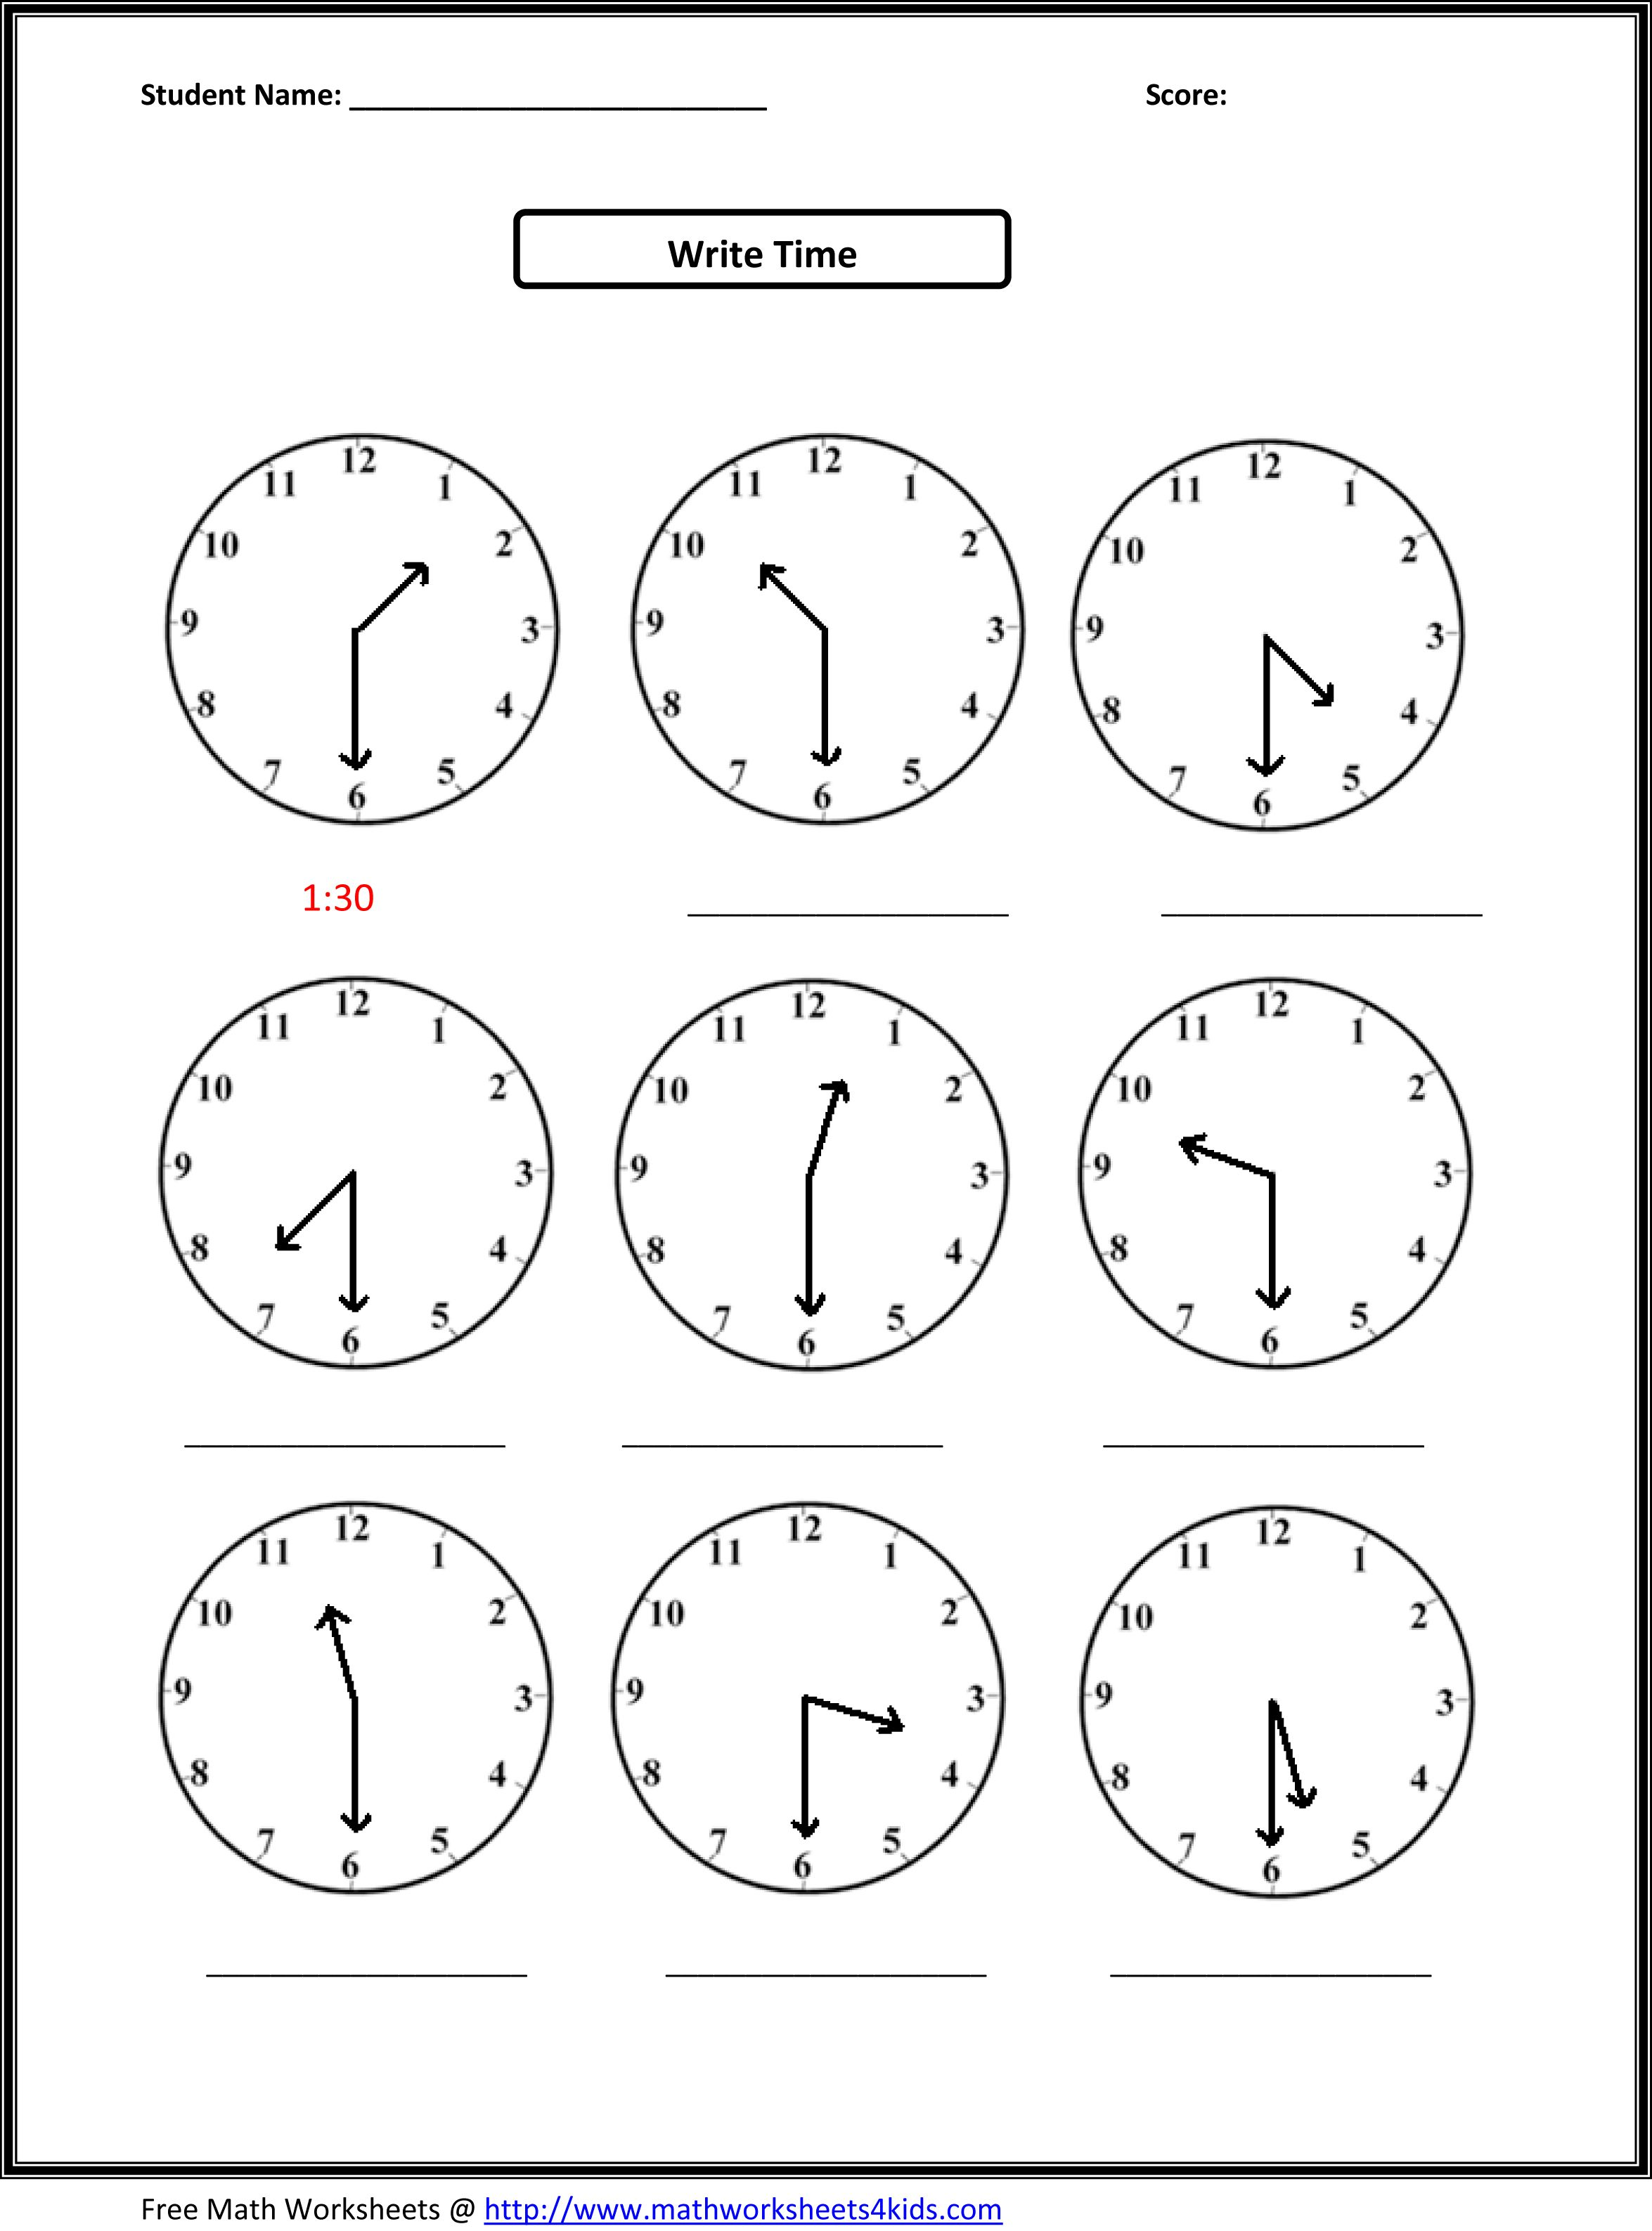 Weirdmailus  Personable Worksheet On Time For Grade   Reocurent With Outstanding Free Printable Telling Time Worksheets Nd Grade  Reocurent With Divine English Worksheet For Kindergarten Also Valentine Printable Worksheets In Addition Worksheet On Integers And Th Grade Bar Graph Worksheets As Well As Time To  Minutes Worksheets Additionally Glencoe Science Worksheet Answers From Reocurentcom With Weirdmailus  Outstanding Worksheet On Time For Grade   Reocurent With Divine Free Printable Telling Time Worksheets Nd Grade  Reocurent And Personable English Worksheet For Kindergarten Also Valentine Printable Worksheets In Addition Worksheet On Integers From Reocurentcom